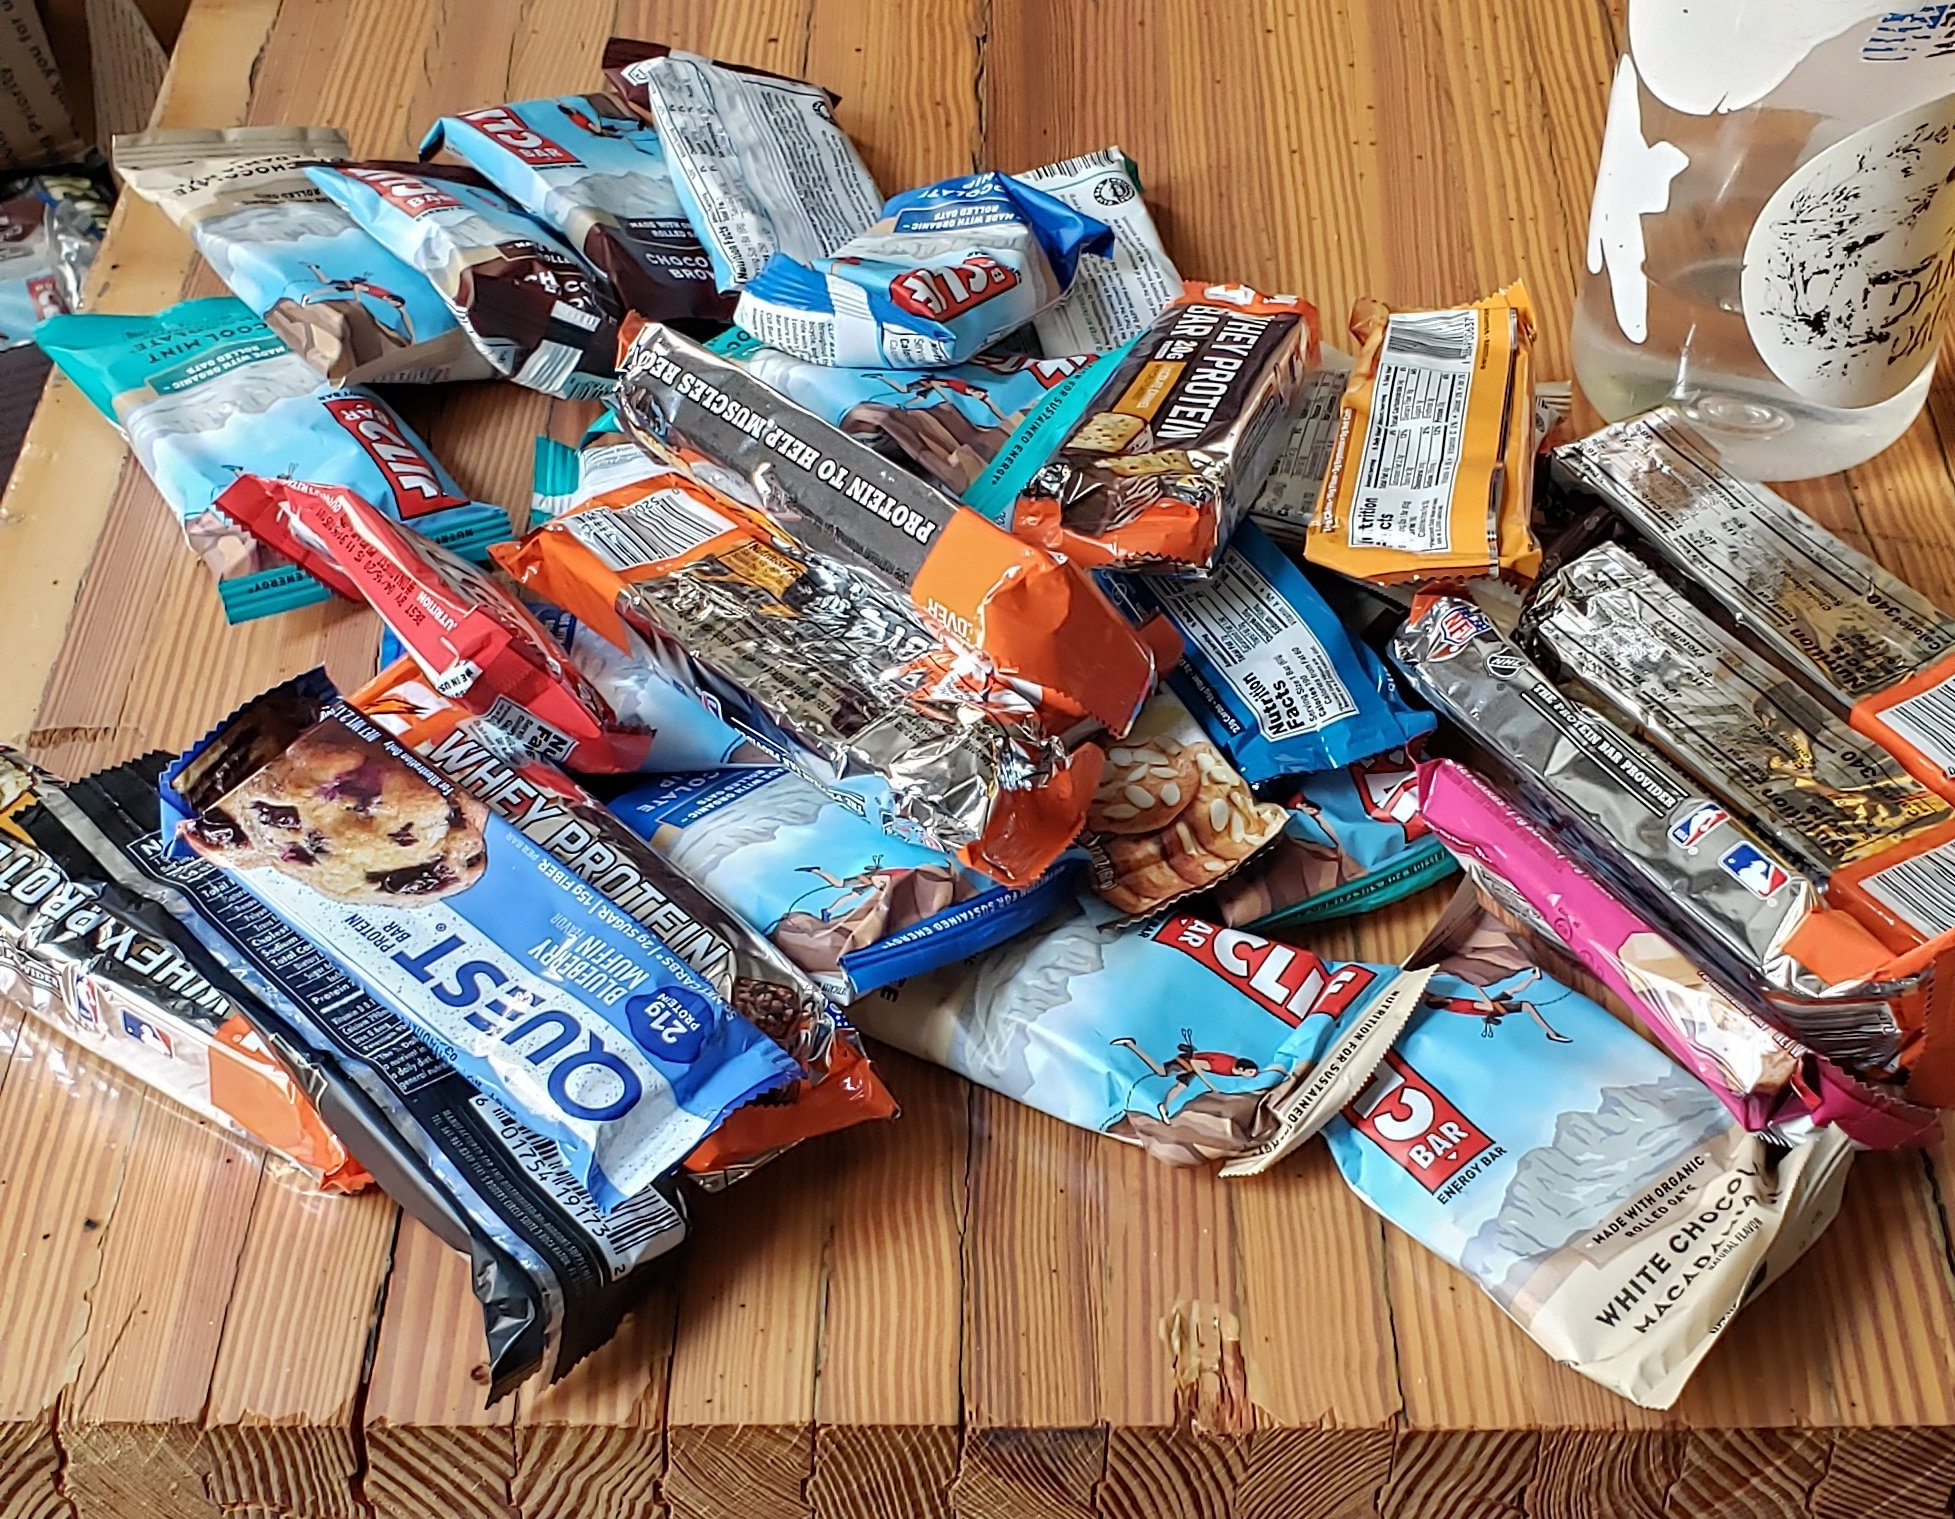 A big pile of various protein bars spread across a wooden table.